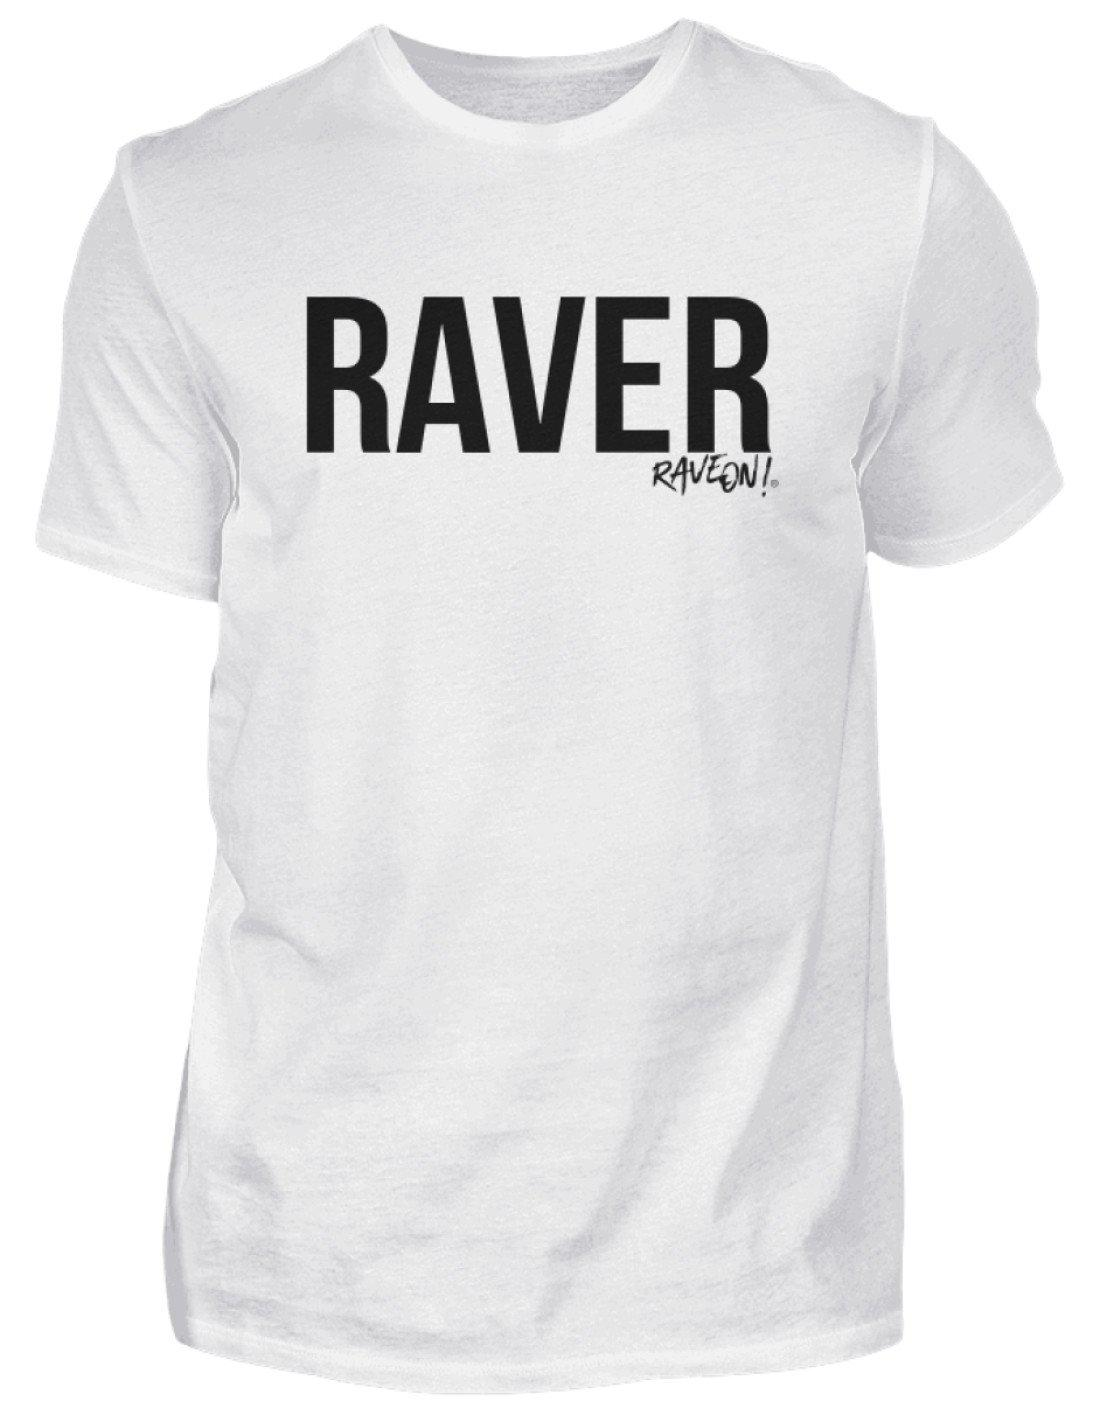 "Stylisches ""Raver"" Shirt-Herren Basic T-Shirt-Weiß-S-Rave-On! I www.rave-on.shop I Deine Rave & Techno Szene Shop I black, cool, cotton, grey, i heart raves, letter, print, rave, rave clothes, rave essentials, rave gear, rave wear, raver, schlicht, schwarz, shirt, t-shirt, t-shirts, top, tshirt, weiß, white - Sexy Festival Streetwear , Clubwear & Raver Style"